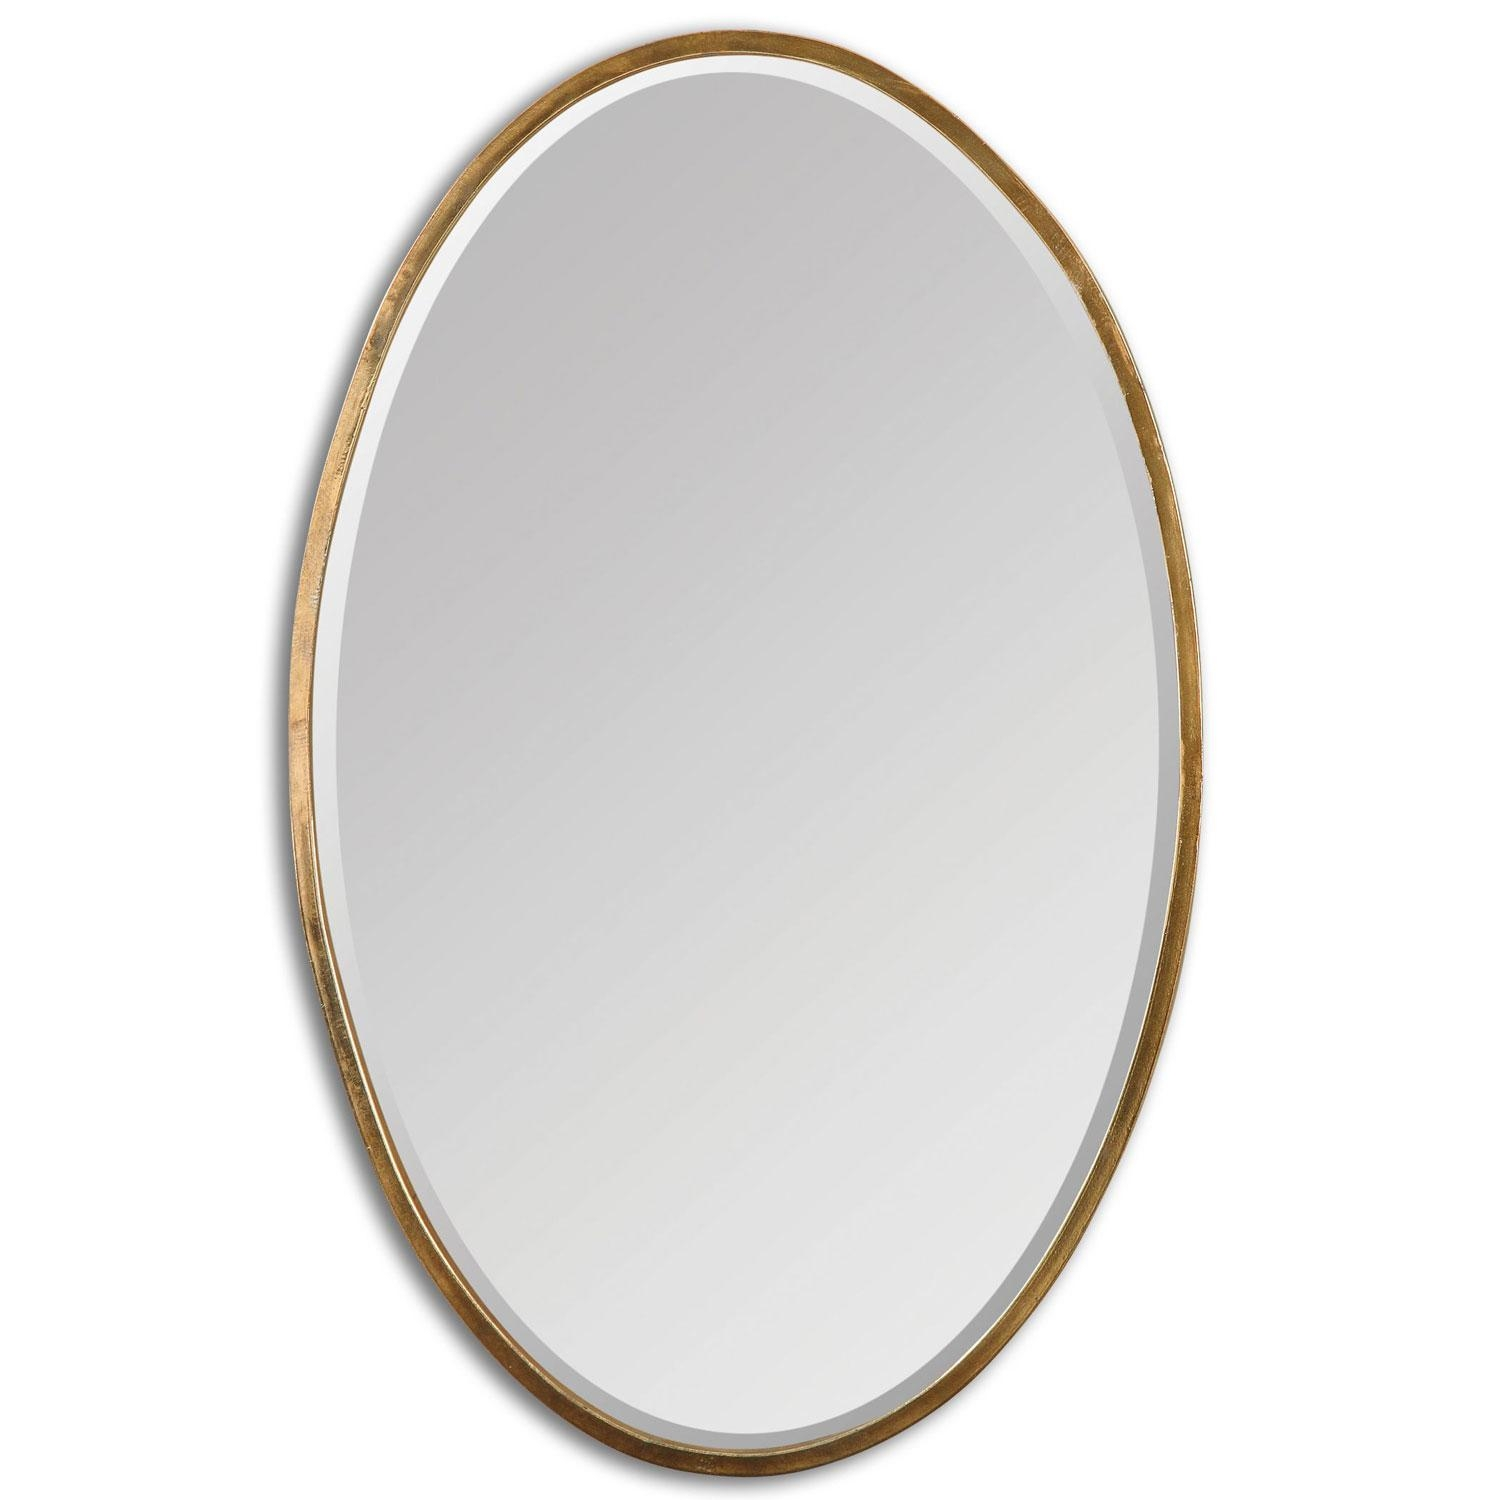 Oval Mirrors | Bellacor Pertaining To Bevelled Oval Mirror (Image 9 of 20)